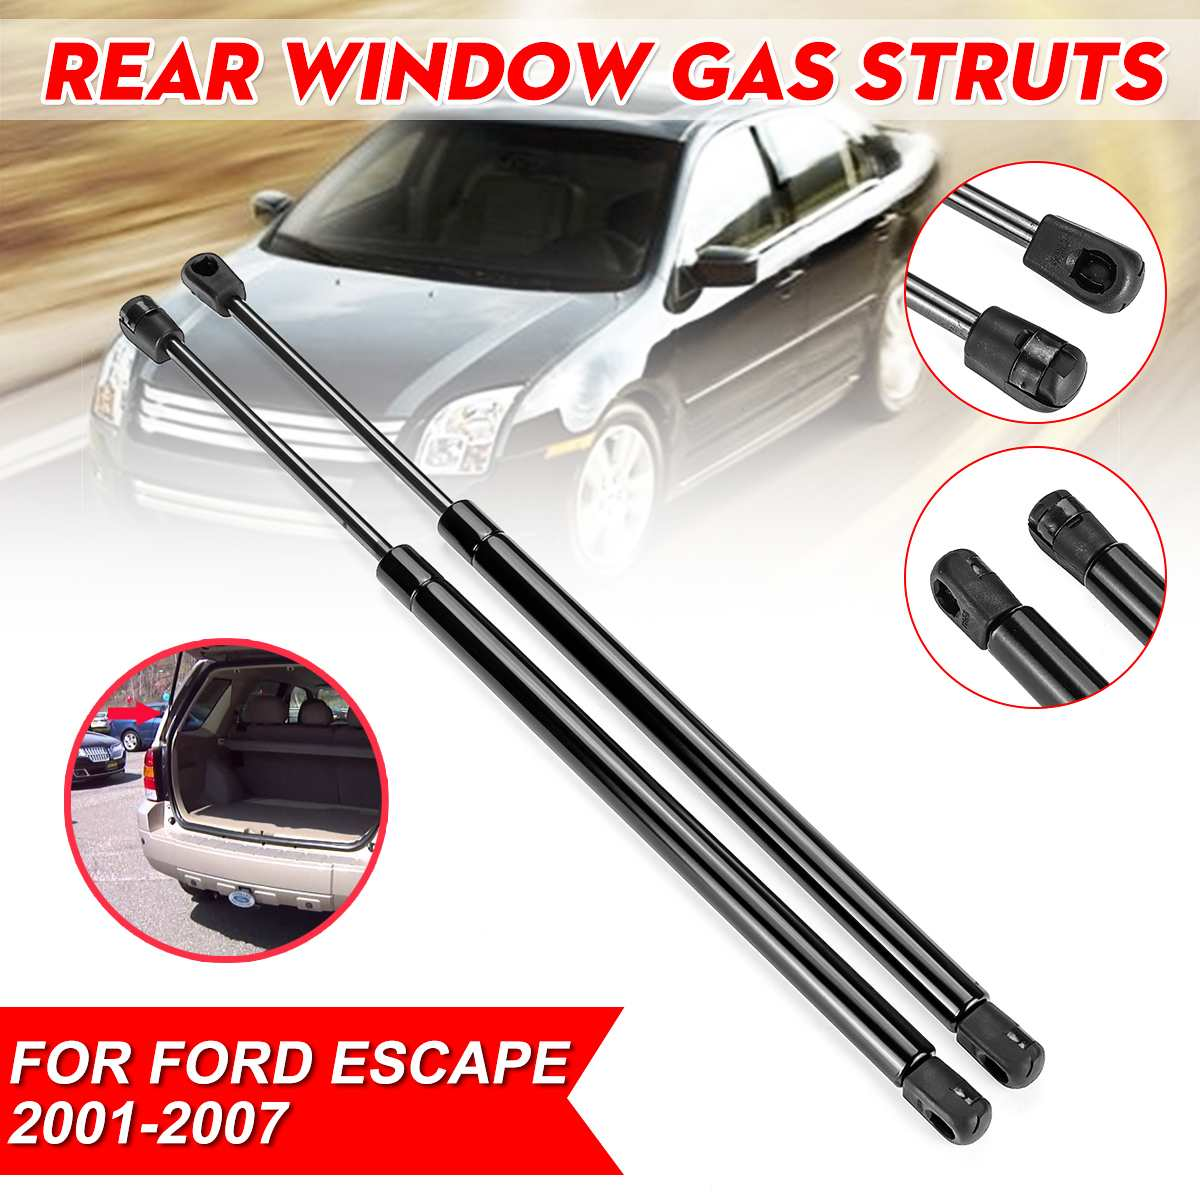 2 Rear Tailgate Lift Supports Gas Struts Springs For 2005-2007 Ford Focus